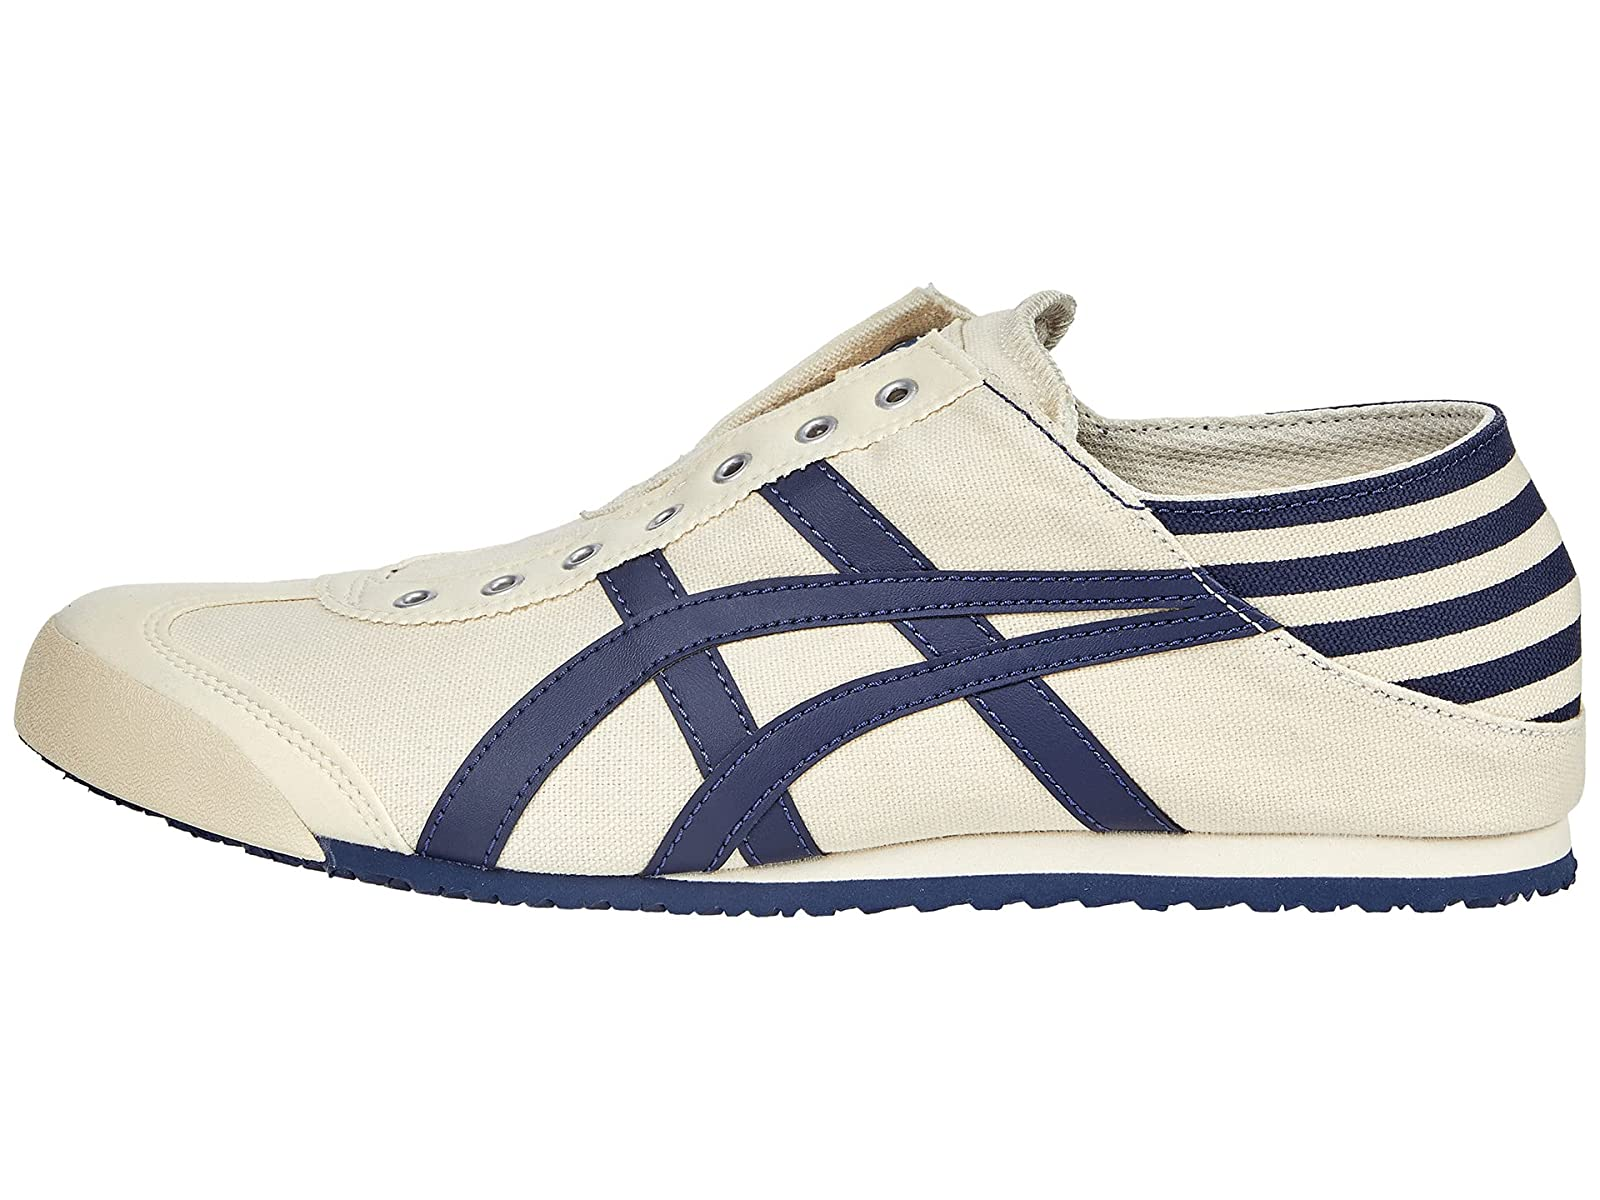 miniature 5 - Adulte Unisexe Baskets & Athlétique Chaussures Onitsuka Tiger Mexico 66 Paraty